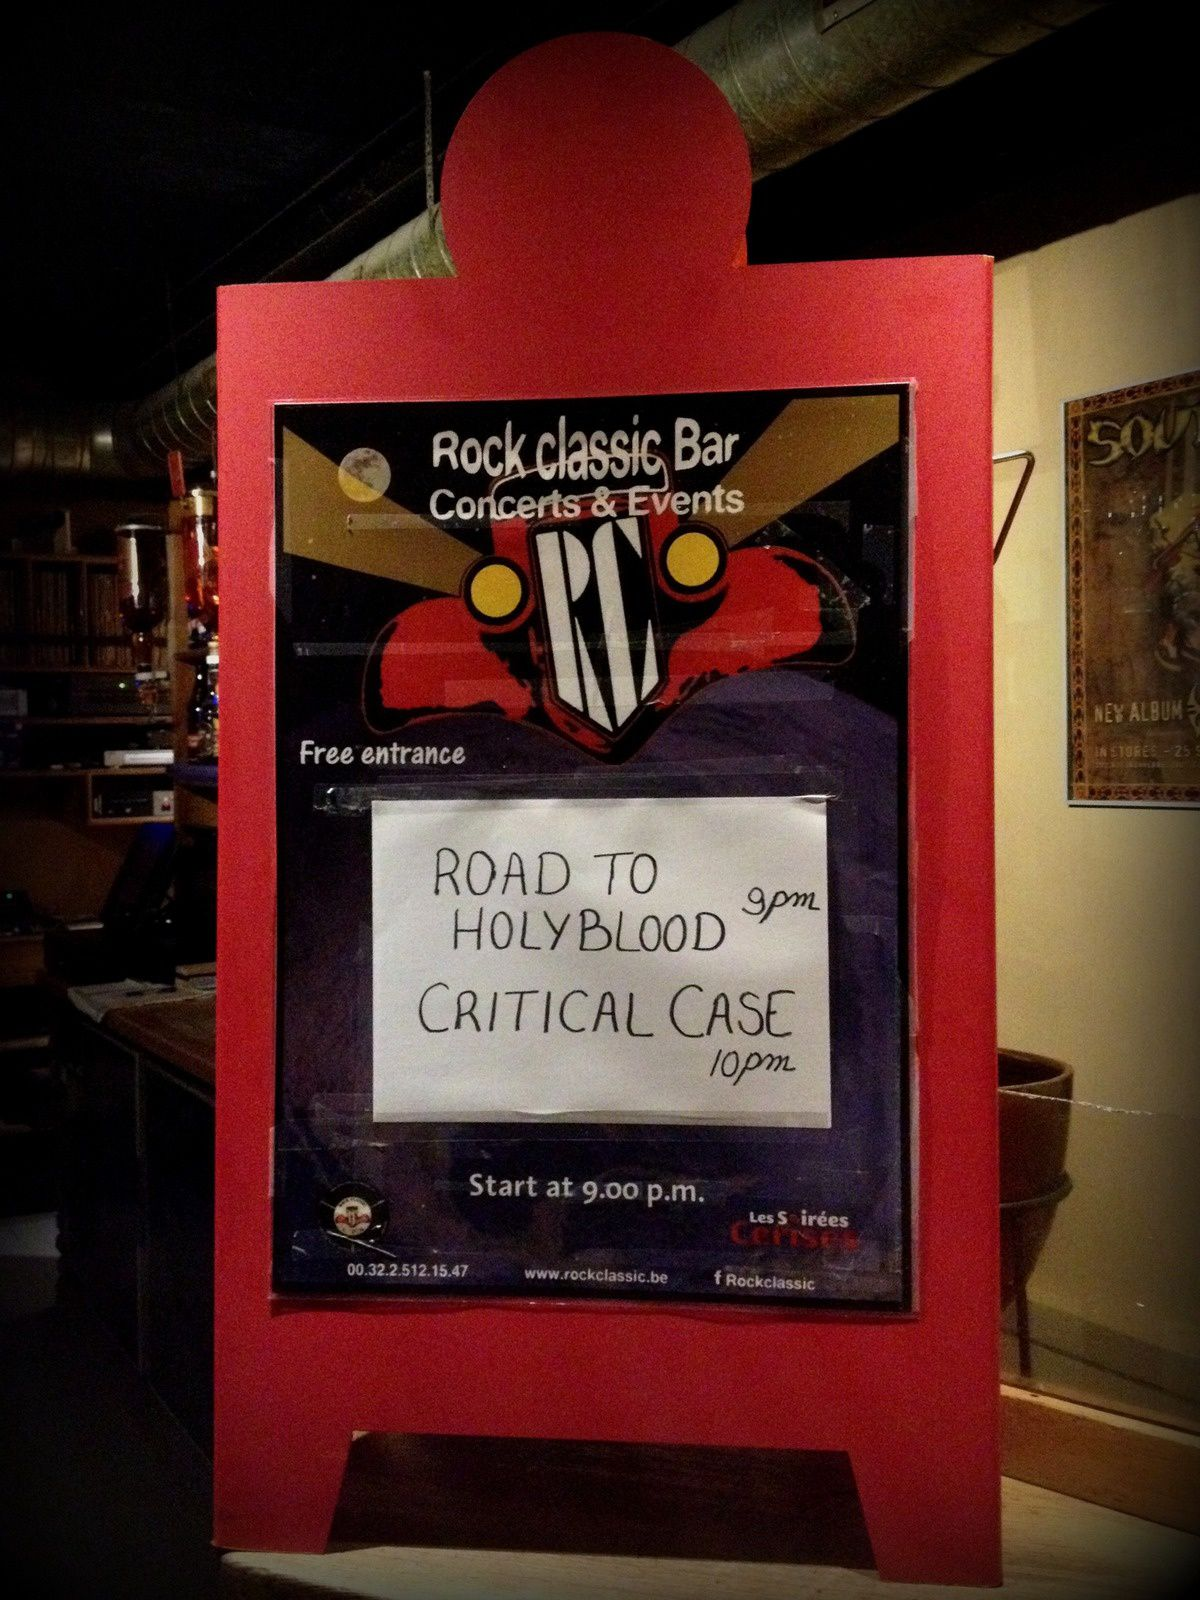 Road to Holyblood + Critical Case @ Rock Classic - 05/03/2016